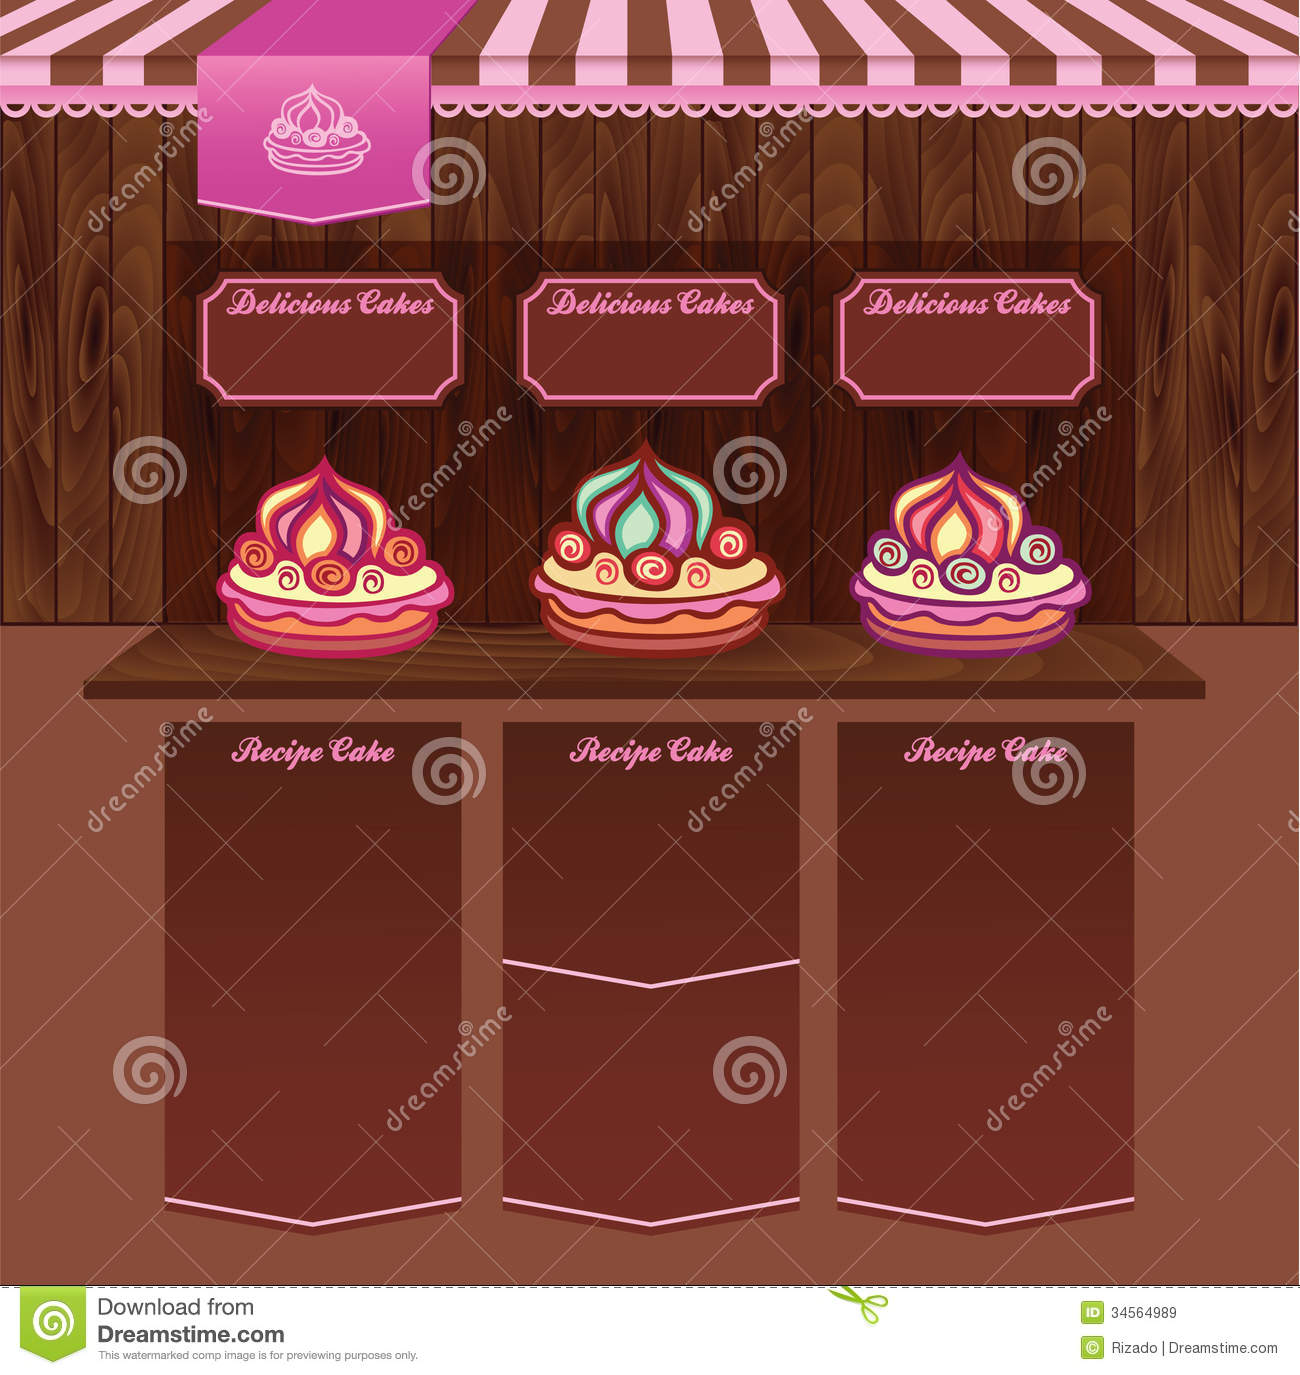 template for cake recipes web site royalty free stock images image 34564989. Black Bedroom Furniture Sets. Home Design Ideas